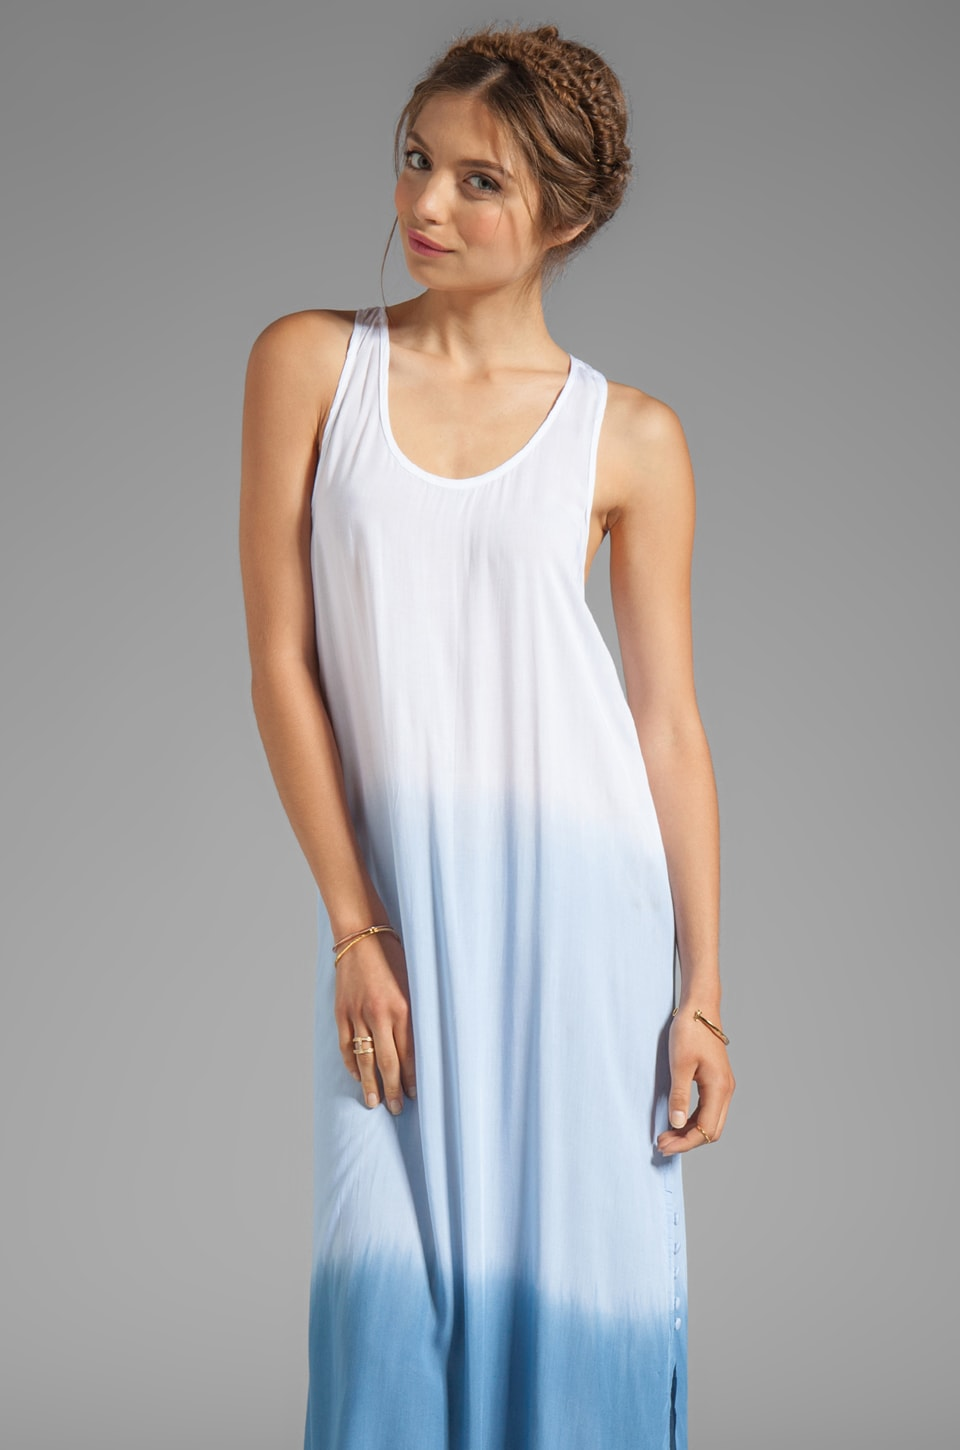 Tiare Hawaii Luna Long Maxi Dress in White blue Ombre